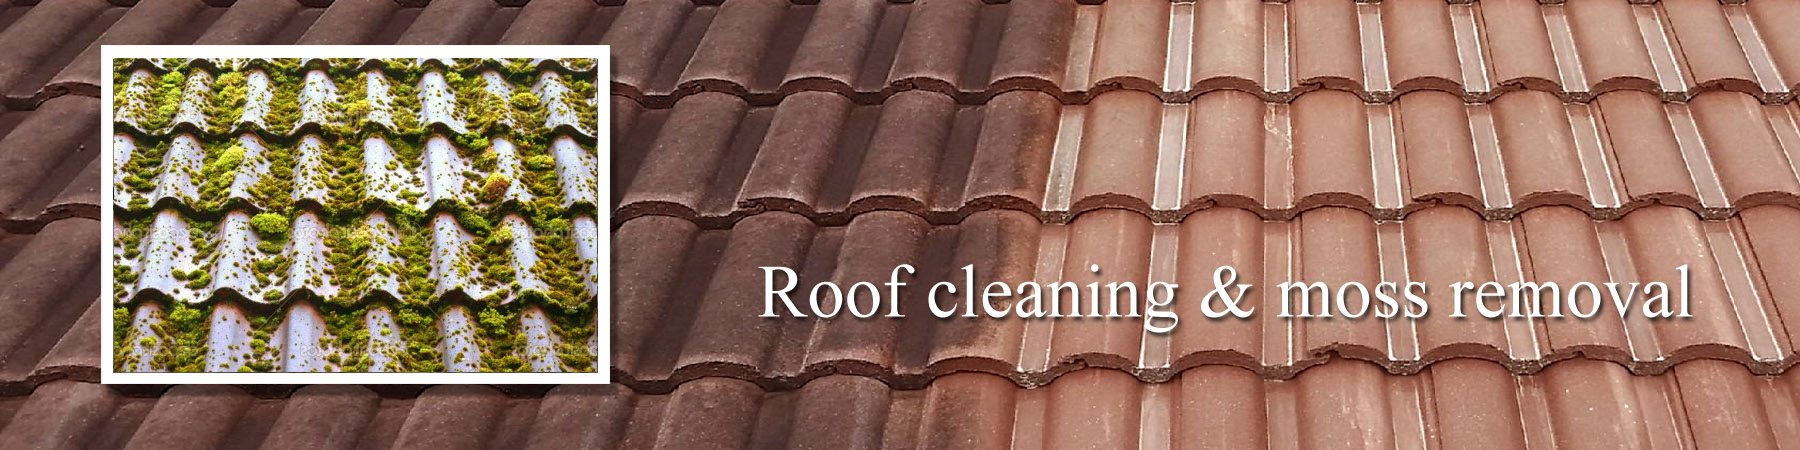 J.R. Roof Cleaning Hurst Green roof moss removal repairs & coating J R Cleaning